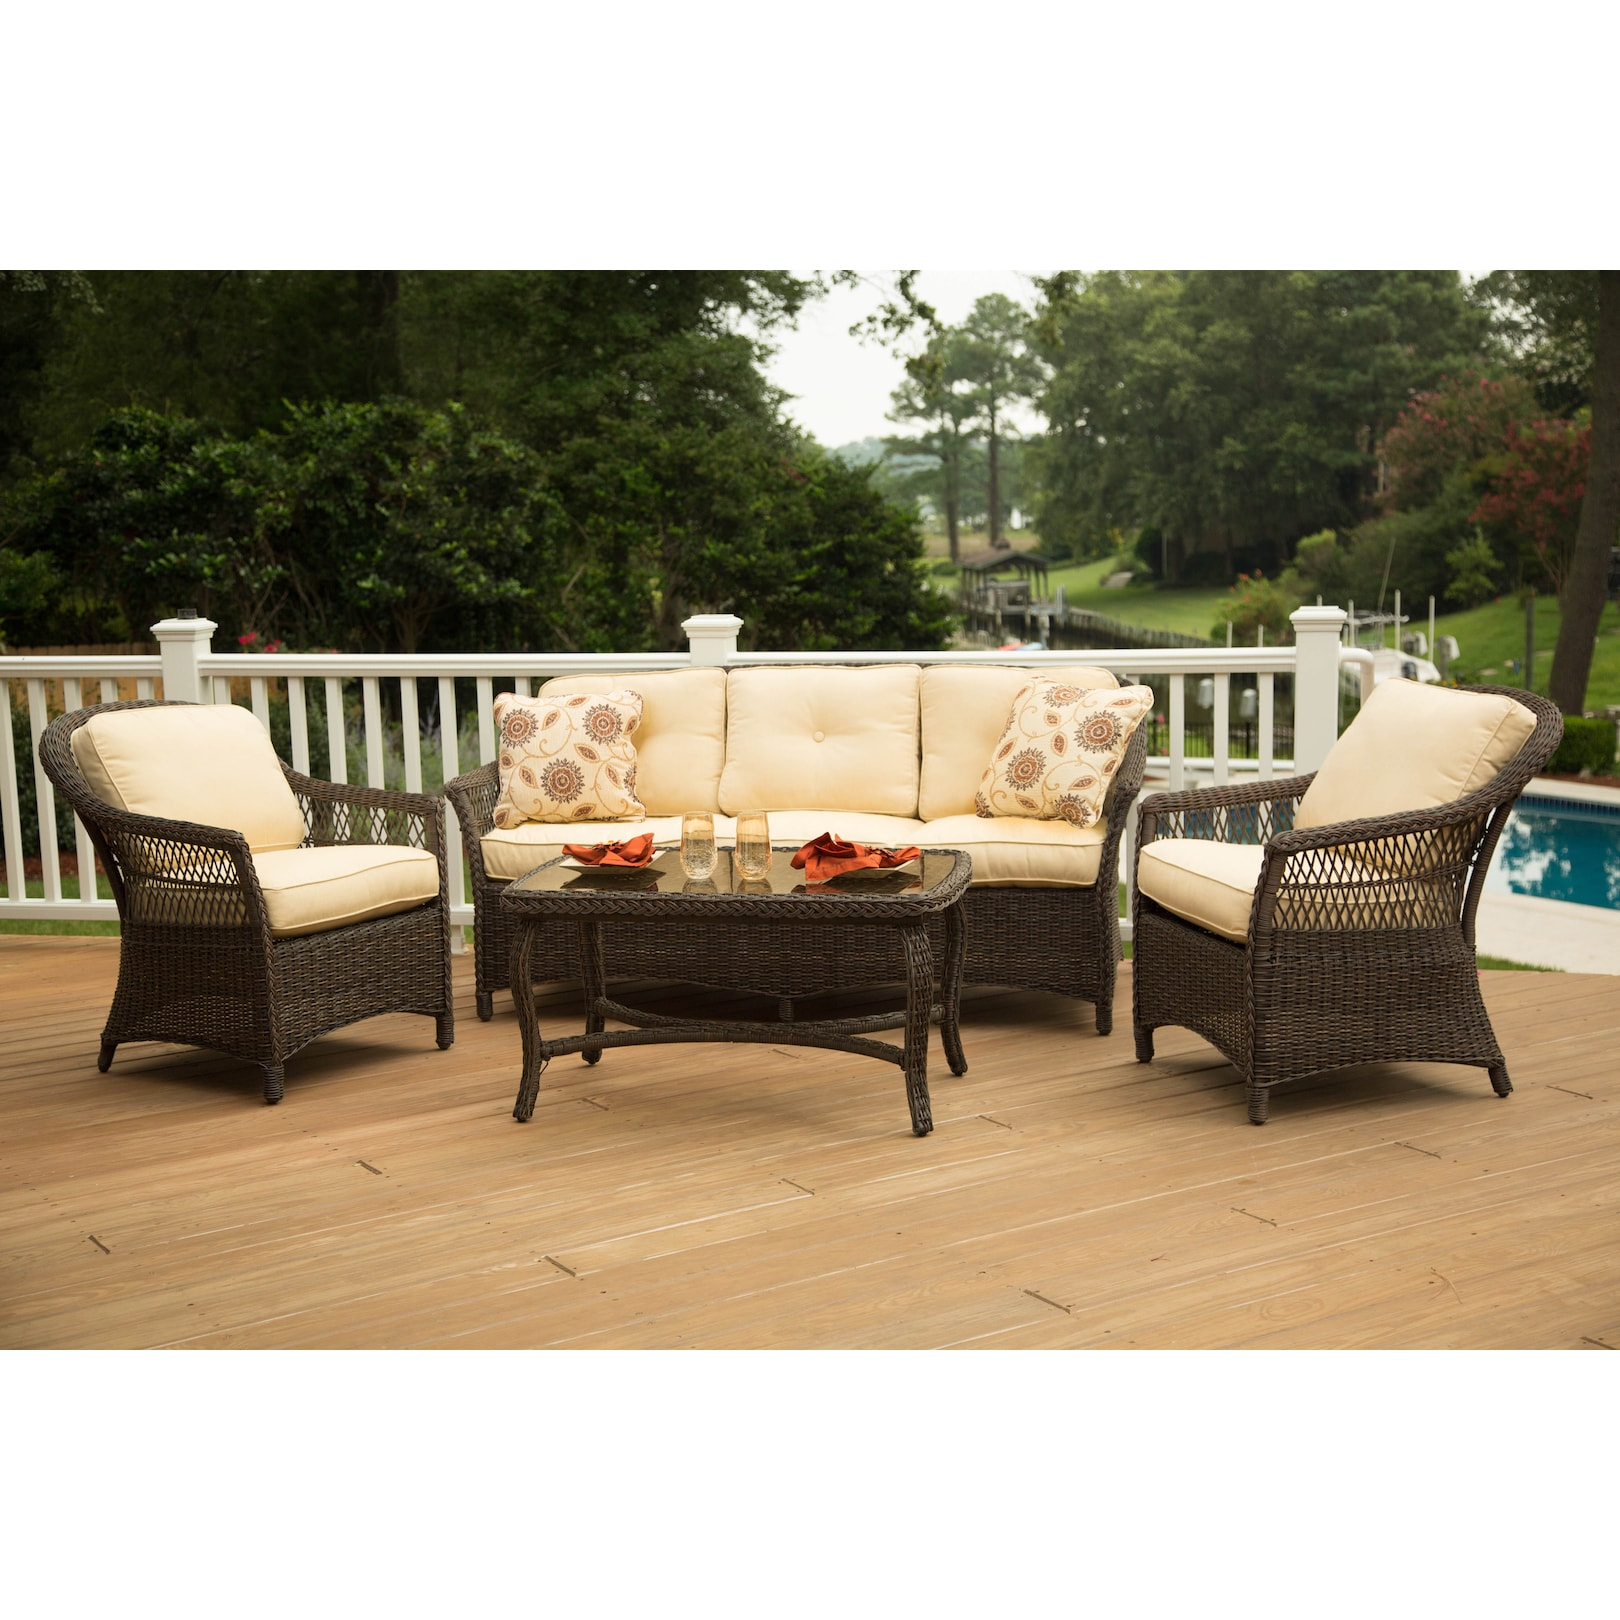 Agio Charlotte Seating Group (Brown), Size 4 Piece Sets, .